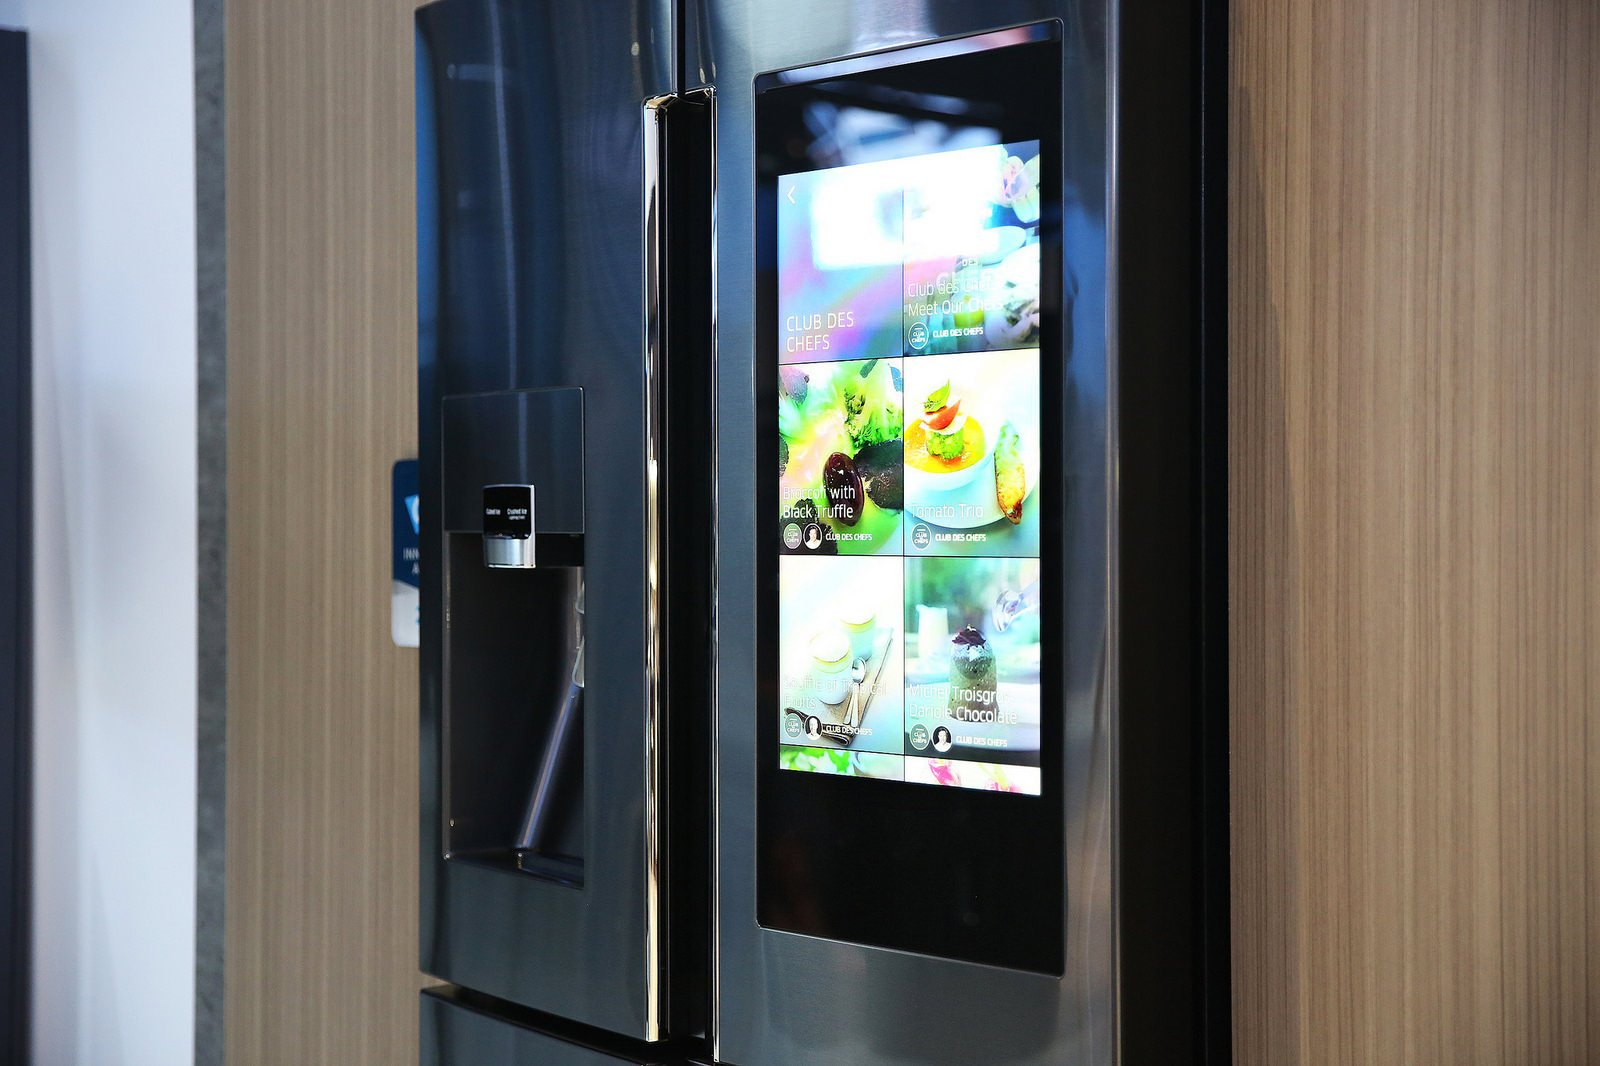 Intelligenter Kühlschrank Ces 2016 The Best Technology From Las Vegas Allbusiness